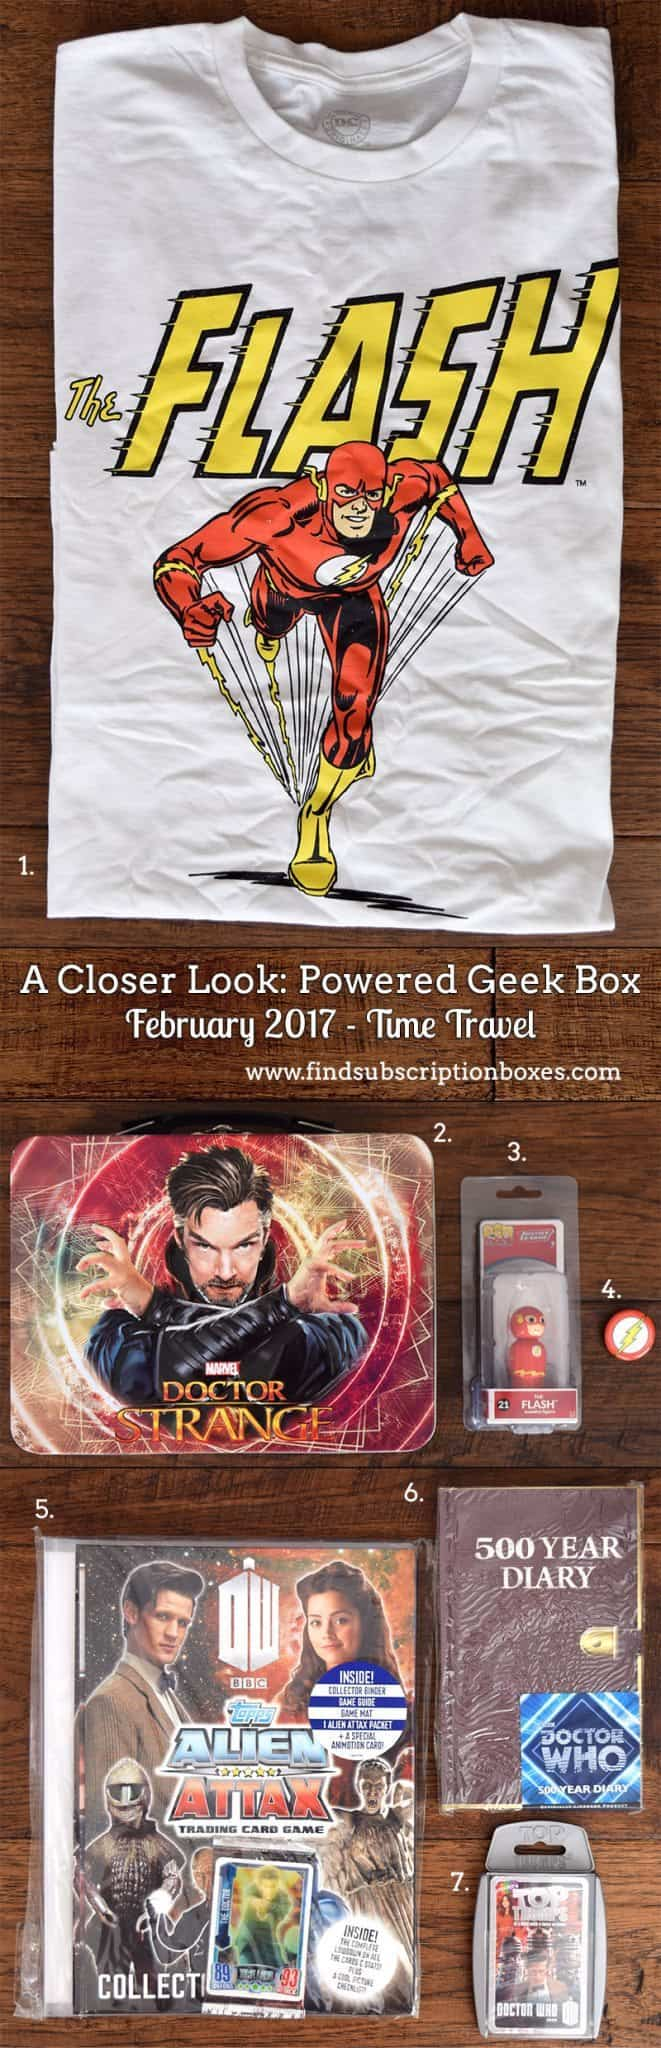 February 2017 Powered Geek Box Review - Inside the Box